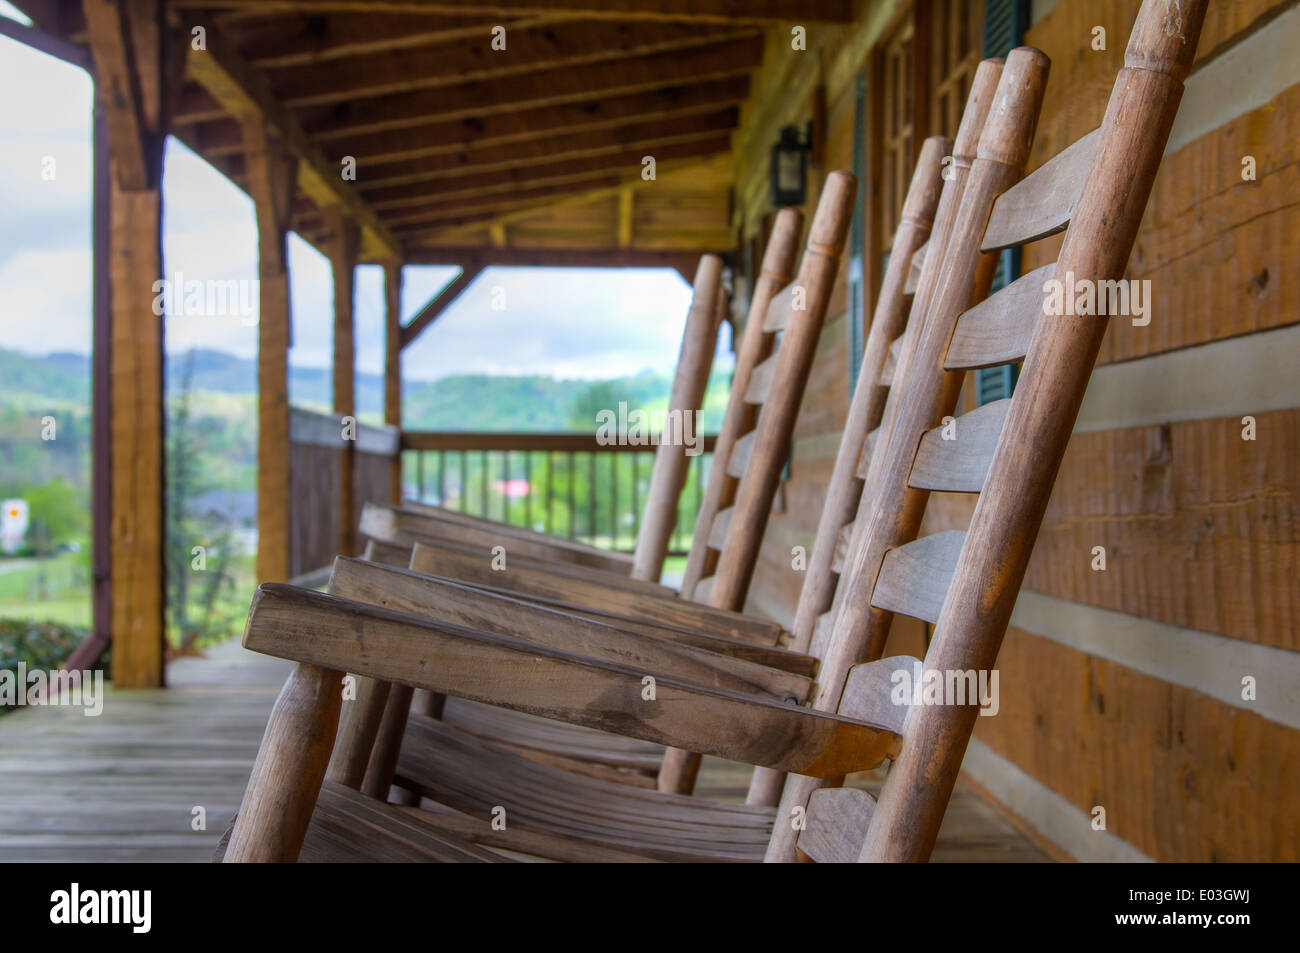 Rocking Chairs in the Great Smoky Mountains National Park - Stock Image